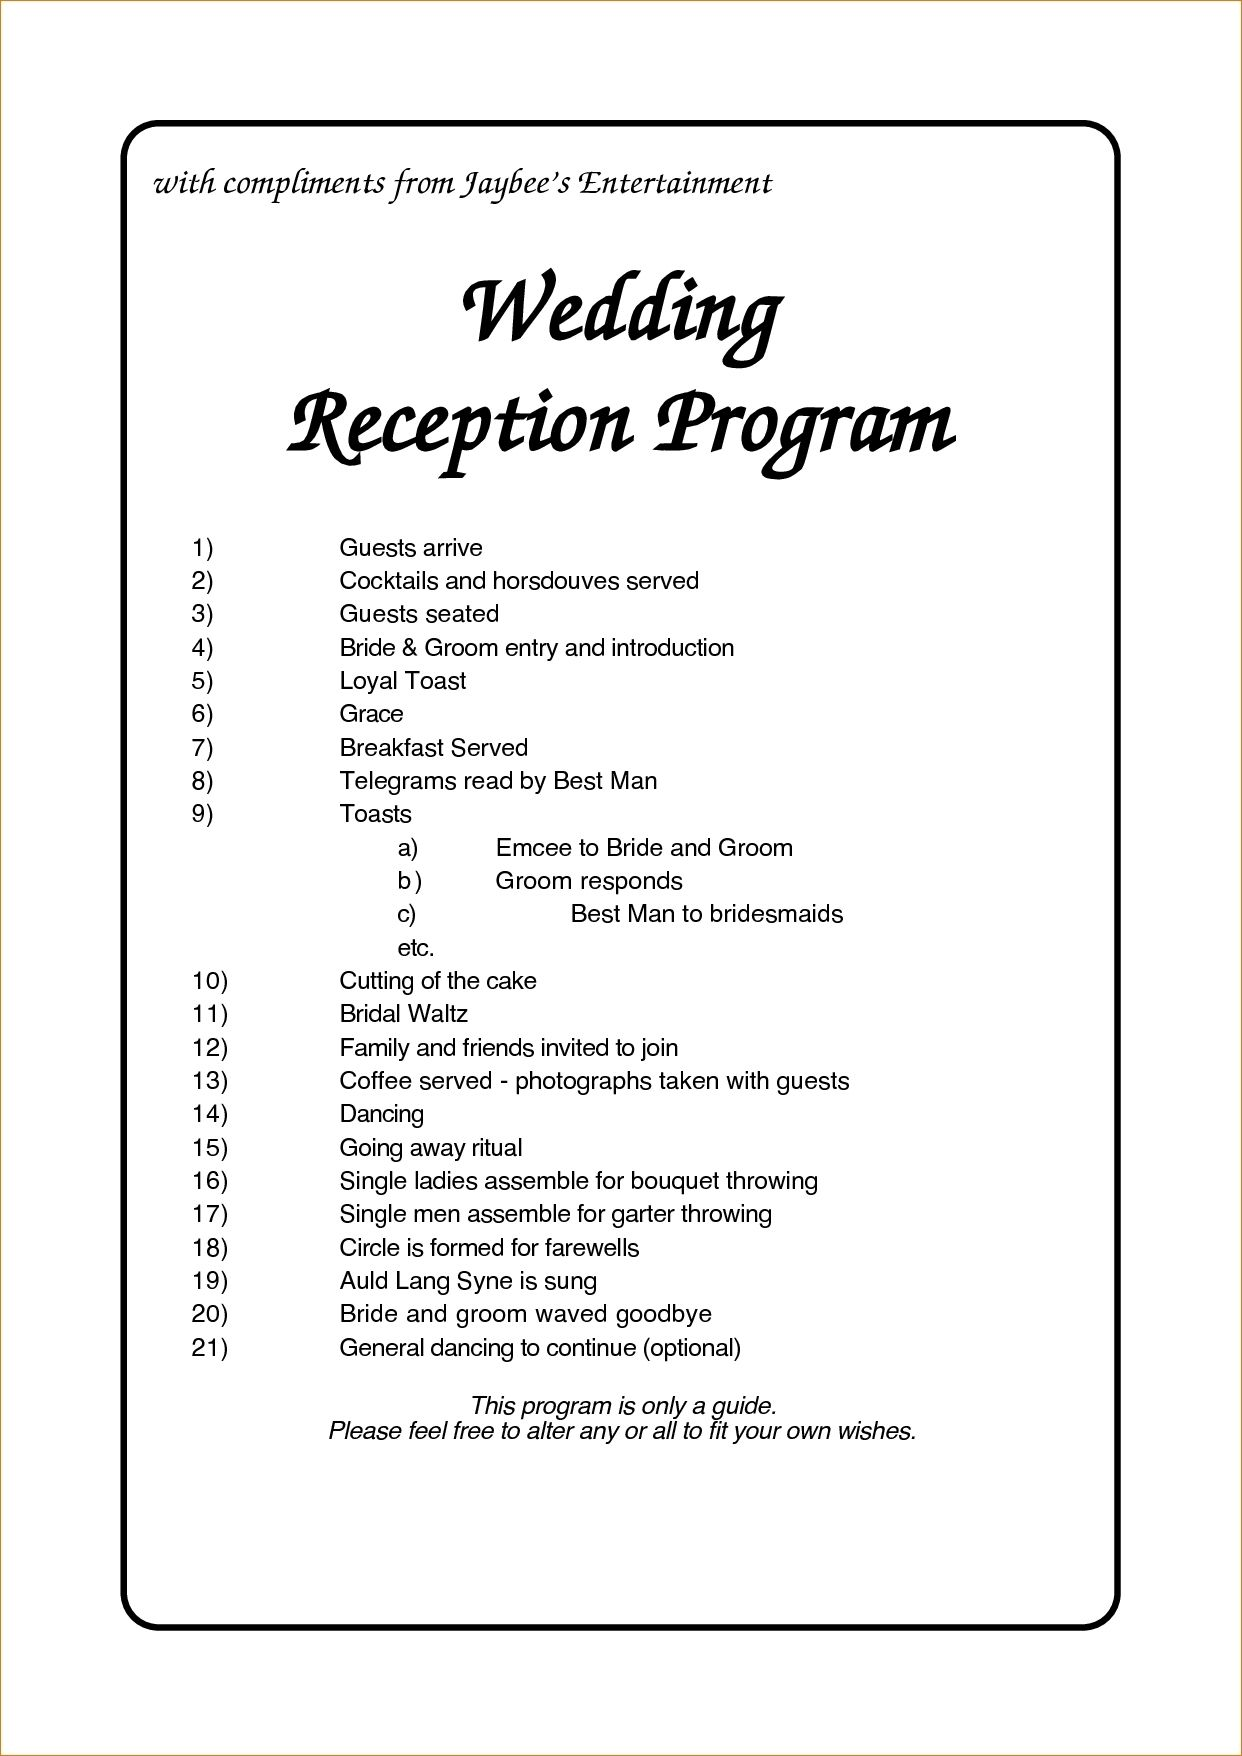 Image Result For Wedding Reception Program With Images